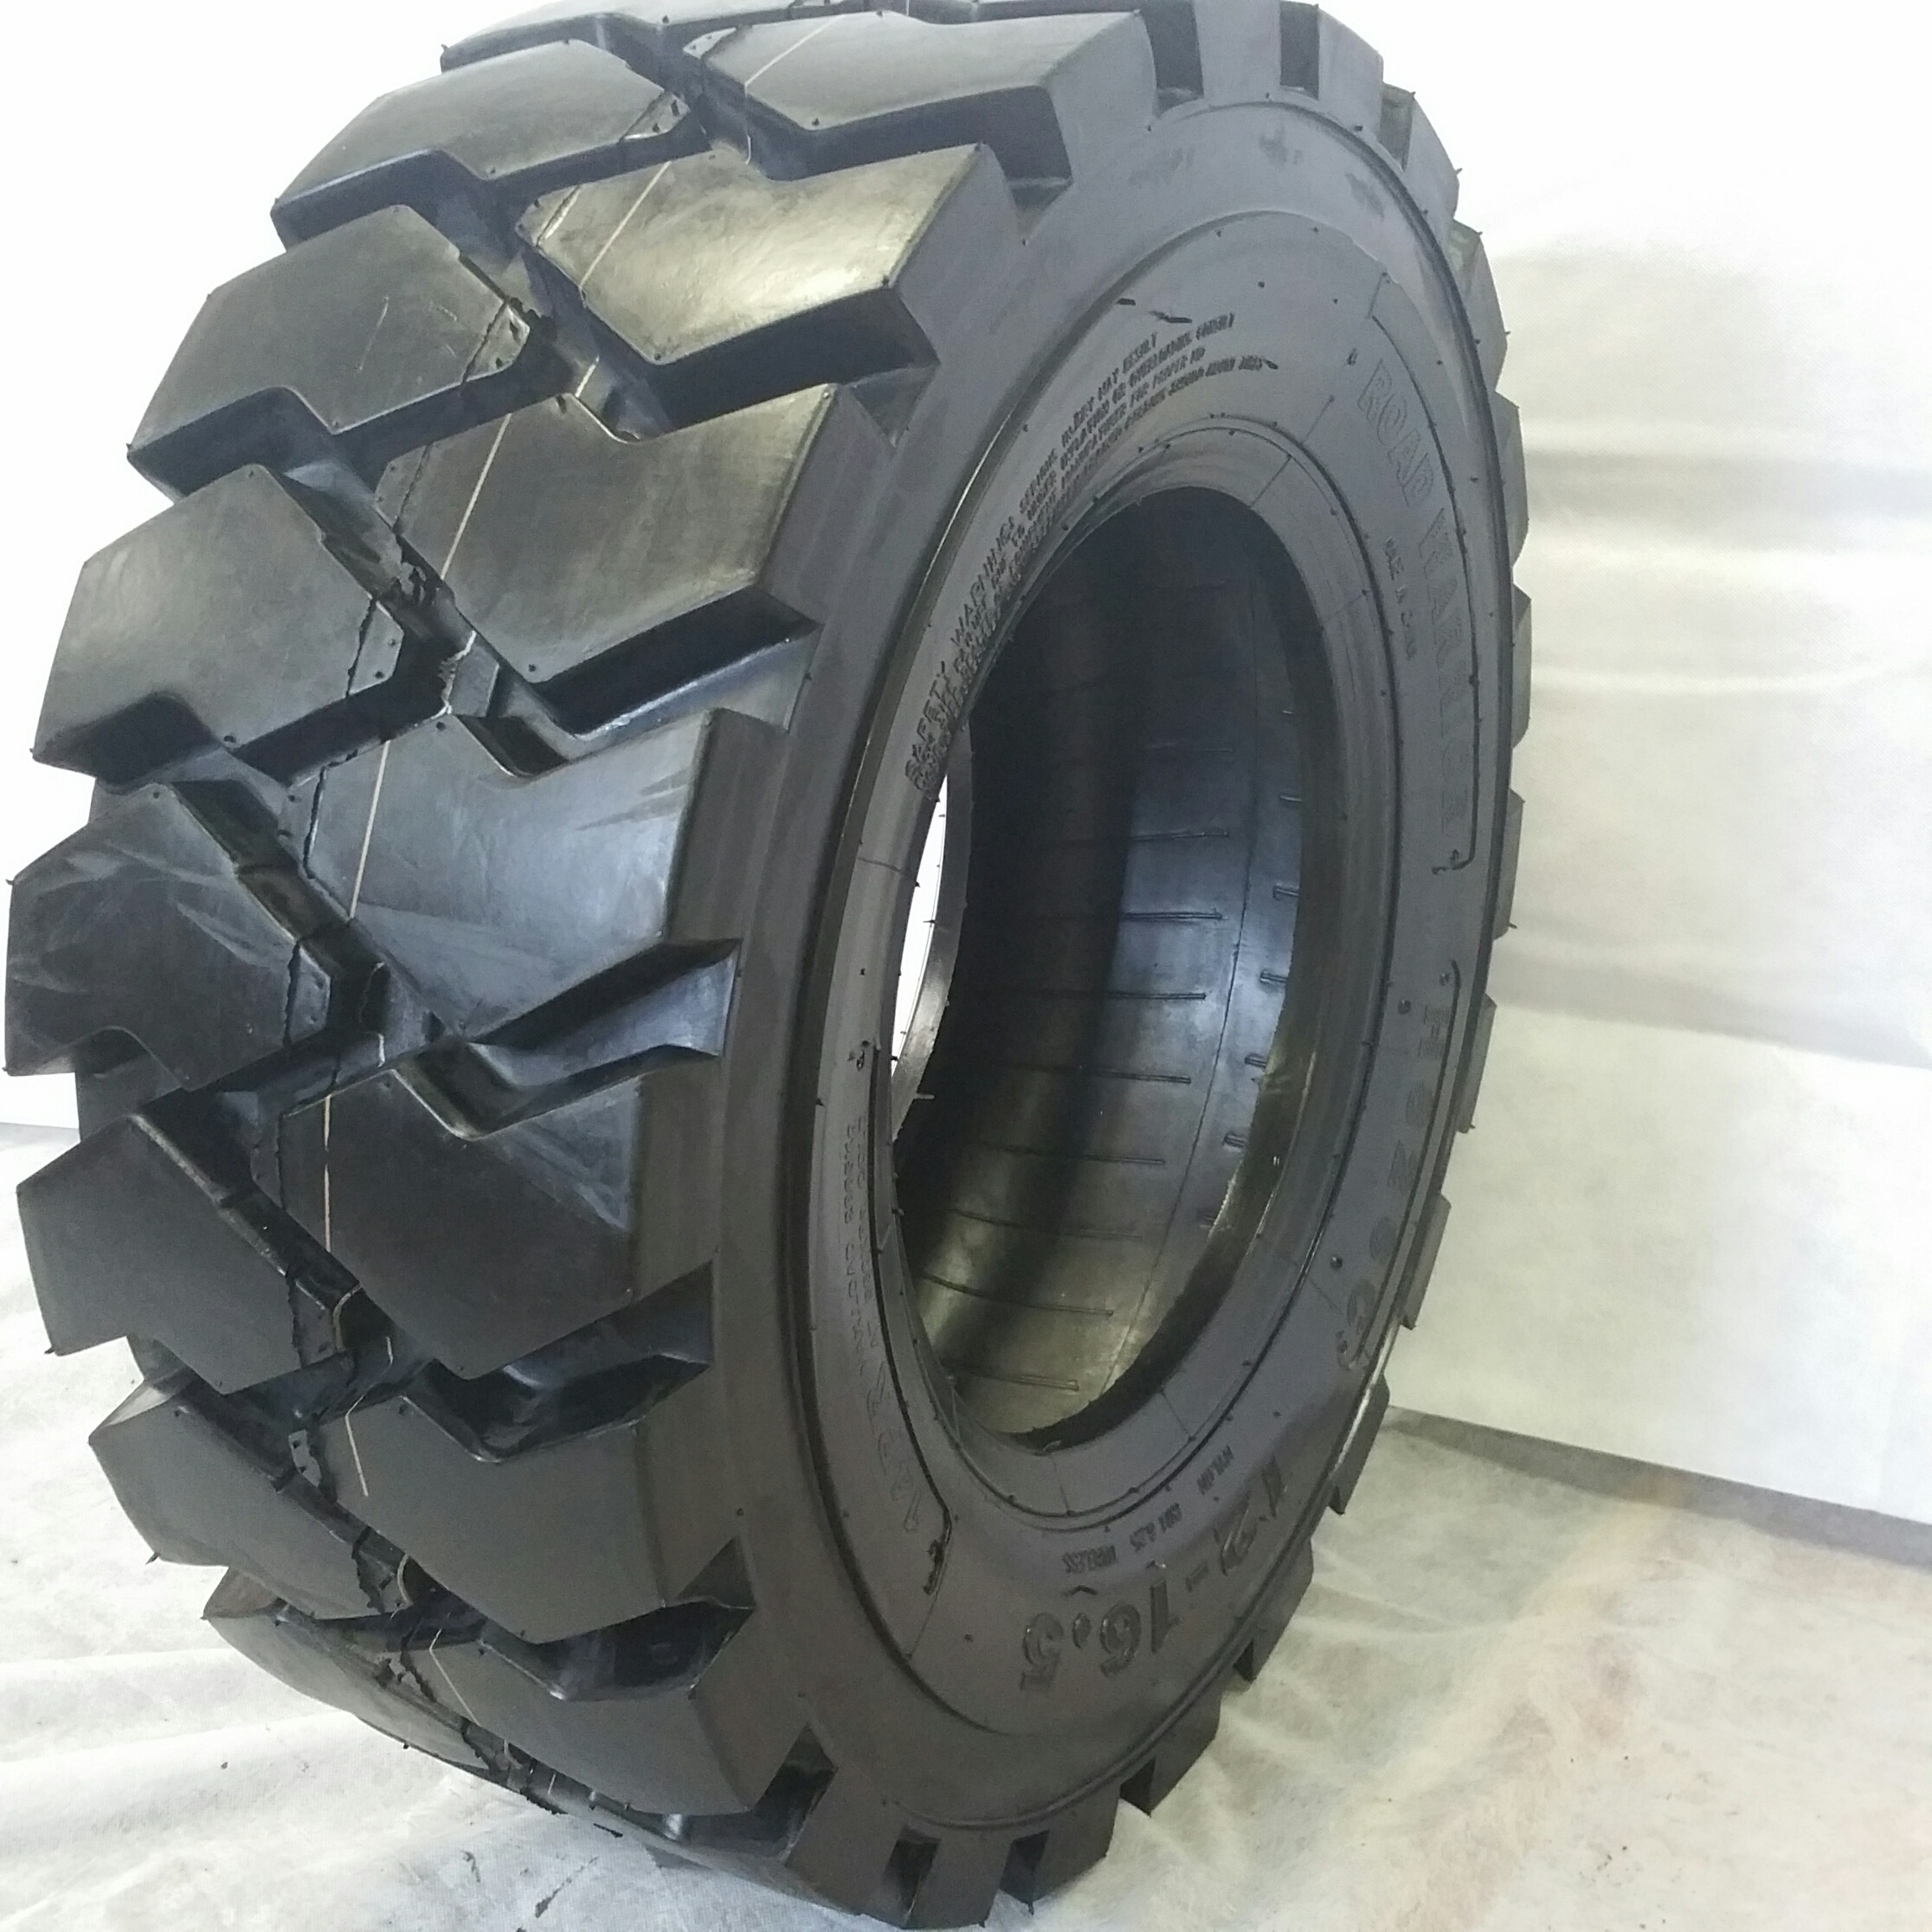 Truck Tires for Sale at Wholesale Prices 12-16.5 RS-103